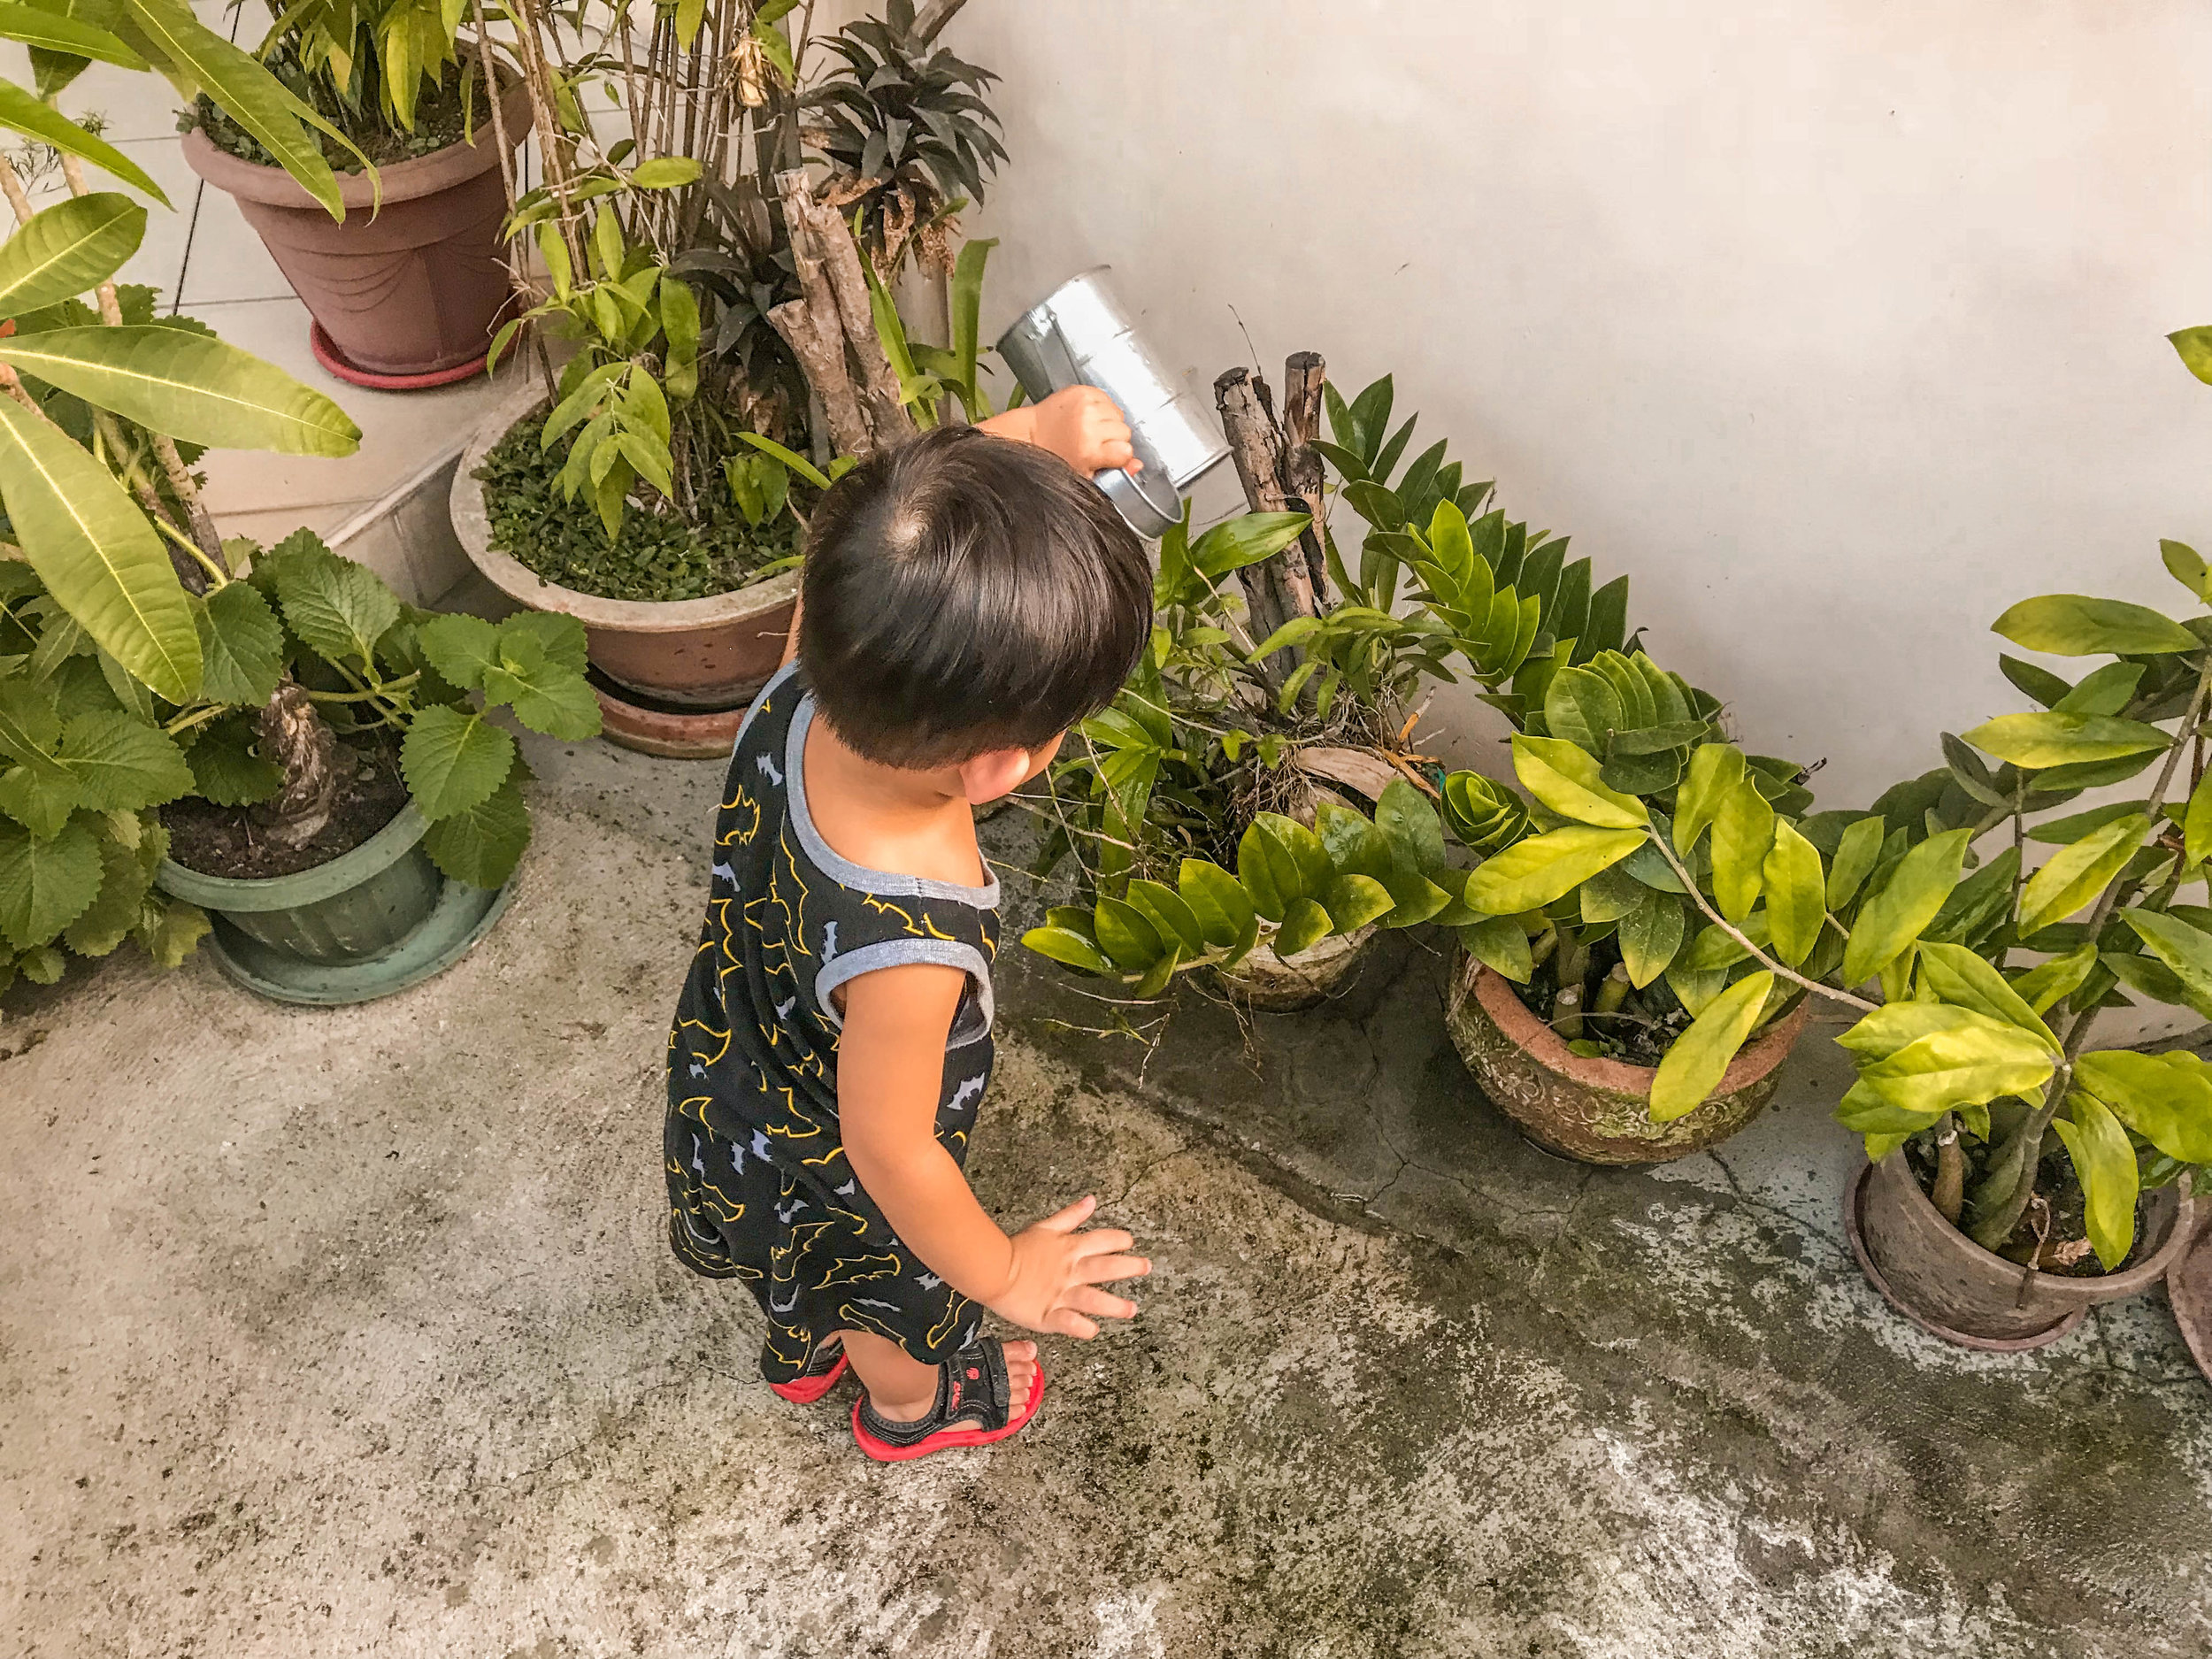 Our Little Gardener - Apart from us all aiming to have a green thumb, we want to do things that would attract the dream life outside this 'toxic' city — which entails having lush lush lush gardens with crops, veggies, orchids and whatever life our earth (and soil) can sustain.